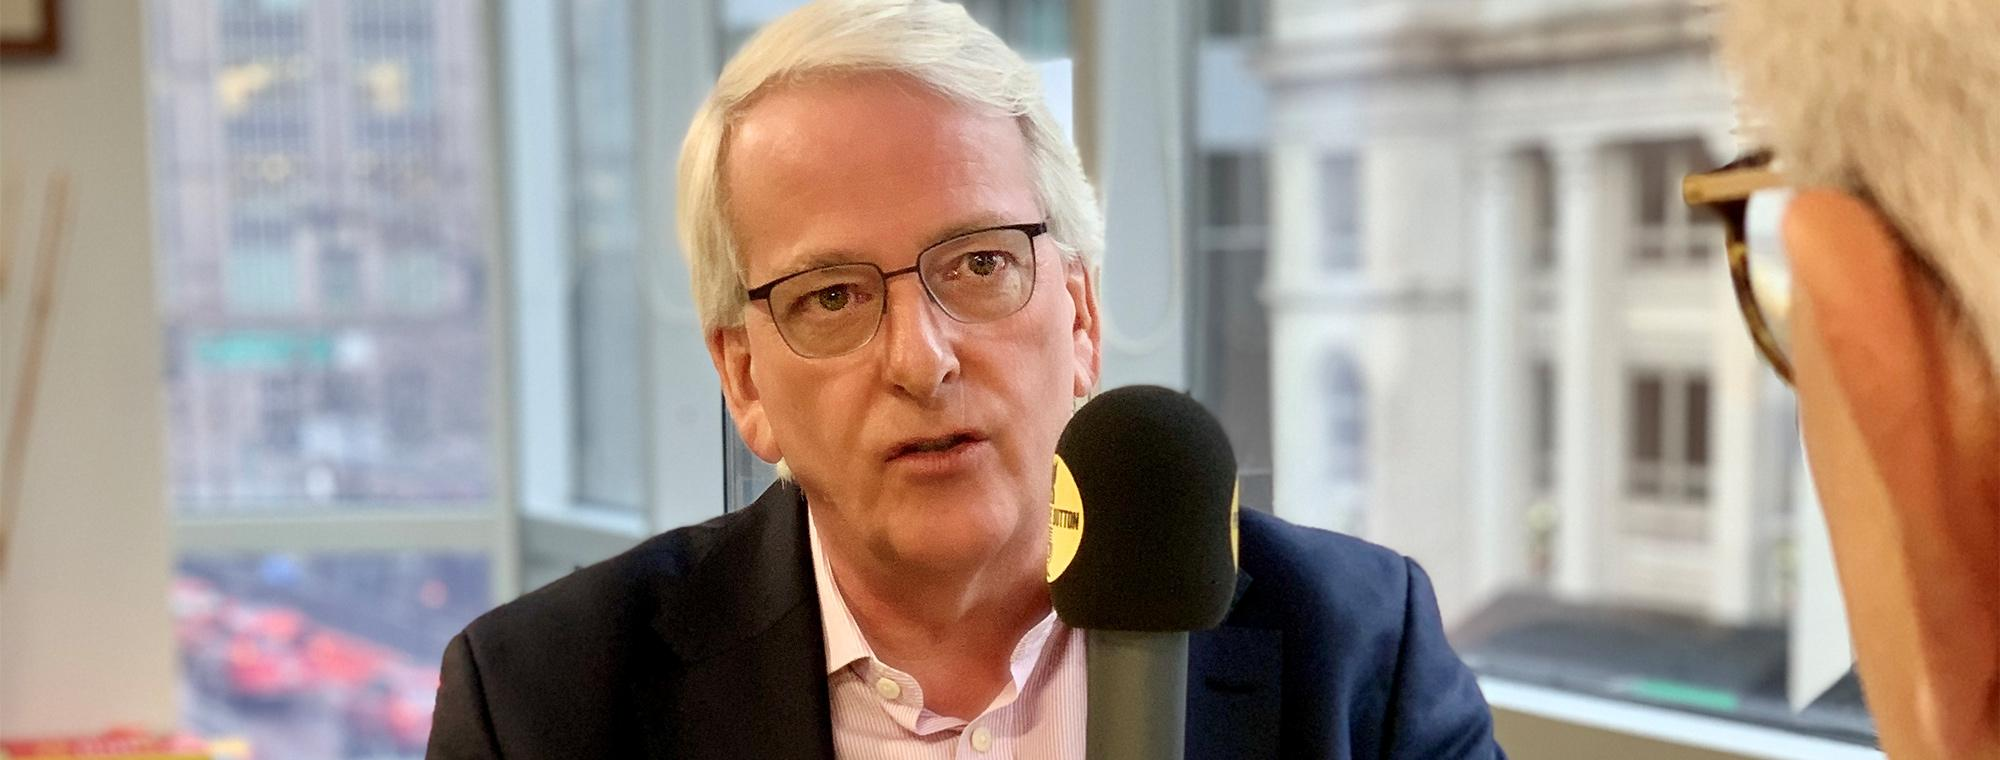 Ivo Daalder on Press the Button